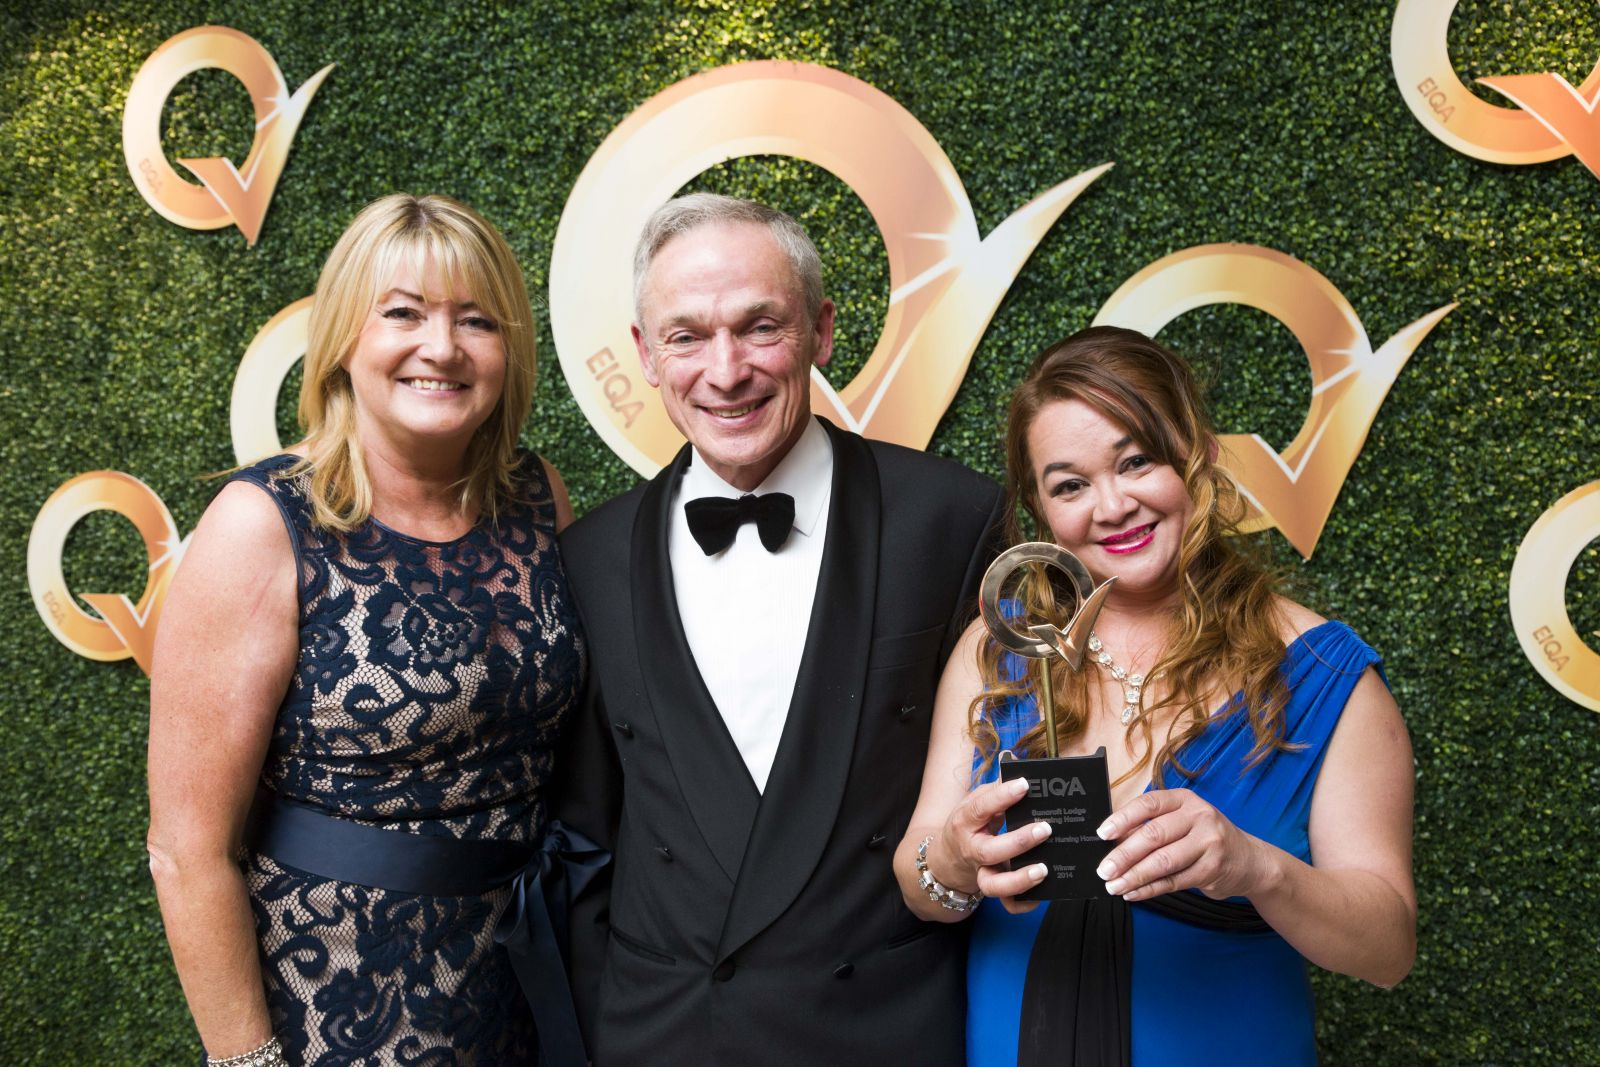 Suncroft Lodge Nursing Home has being awarded the Q Mark Irish Nursing Home the Year 2014 at an awards ceremony at the Double Tree Hotel in Dublin